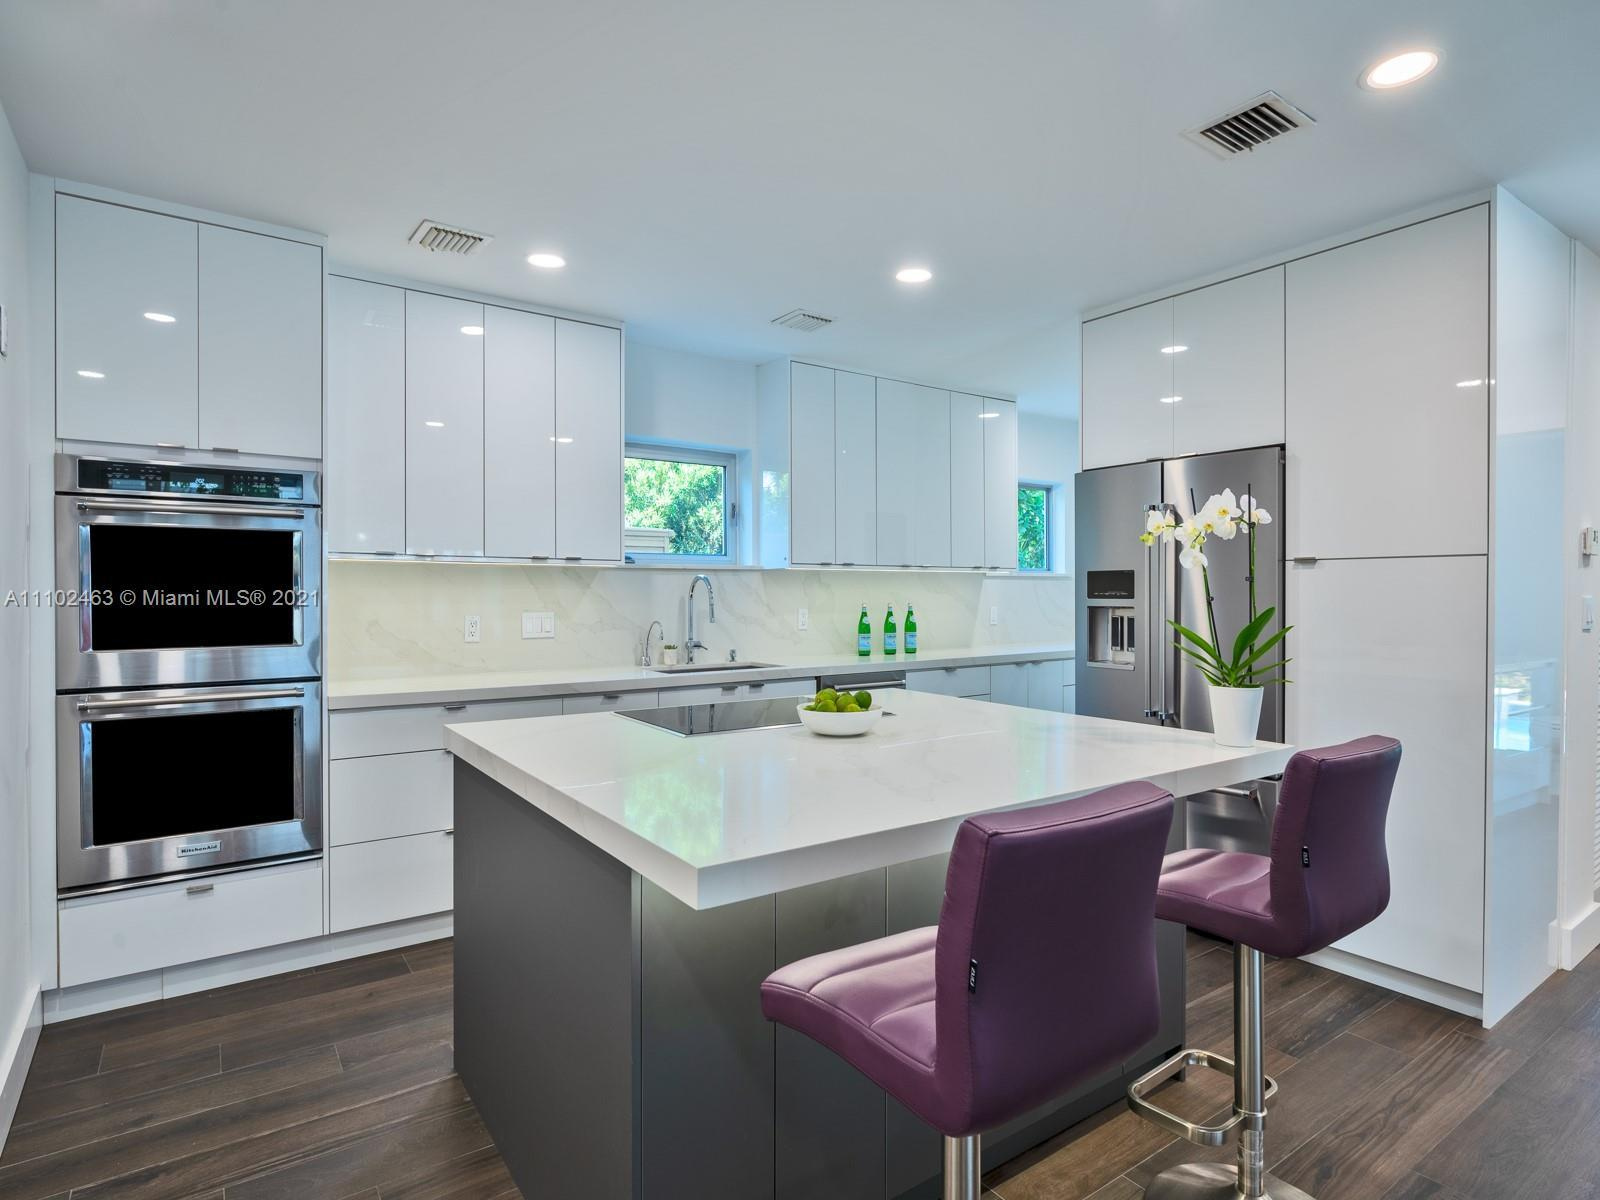 Welcome home to nearly 4,000 sq foot meticulously renovated 1925 Miami Beach residence on prestigiou